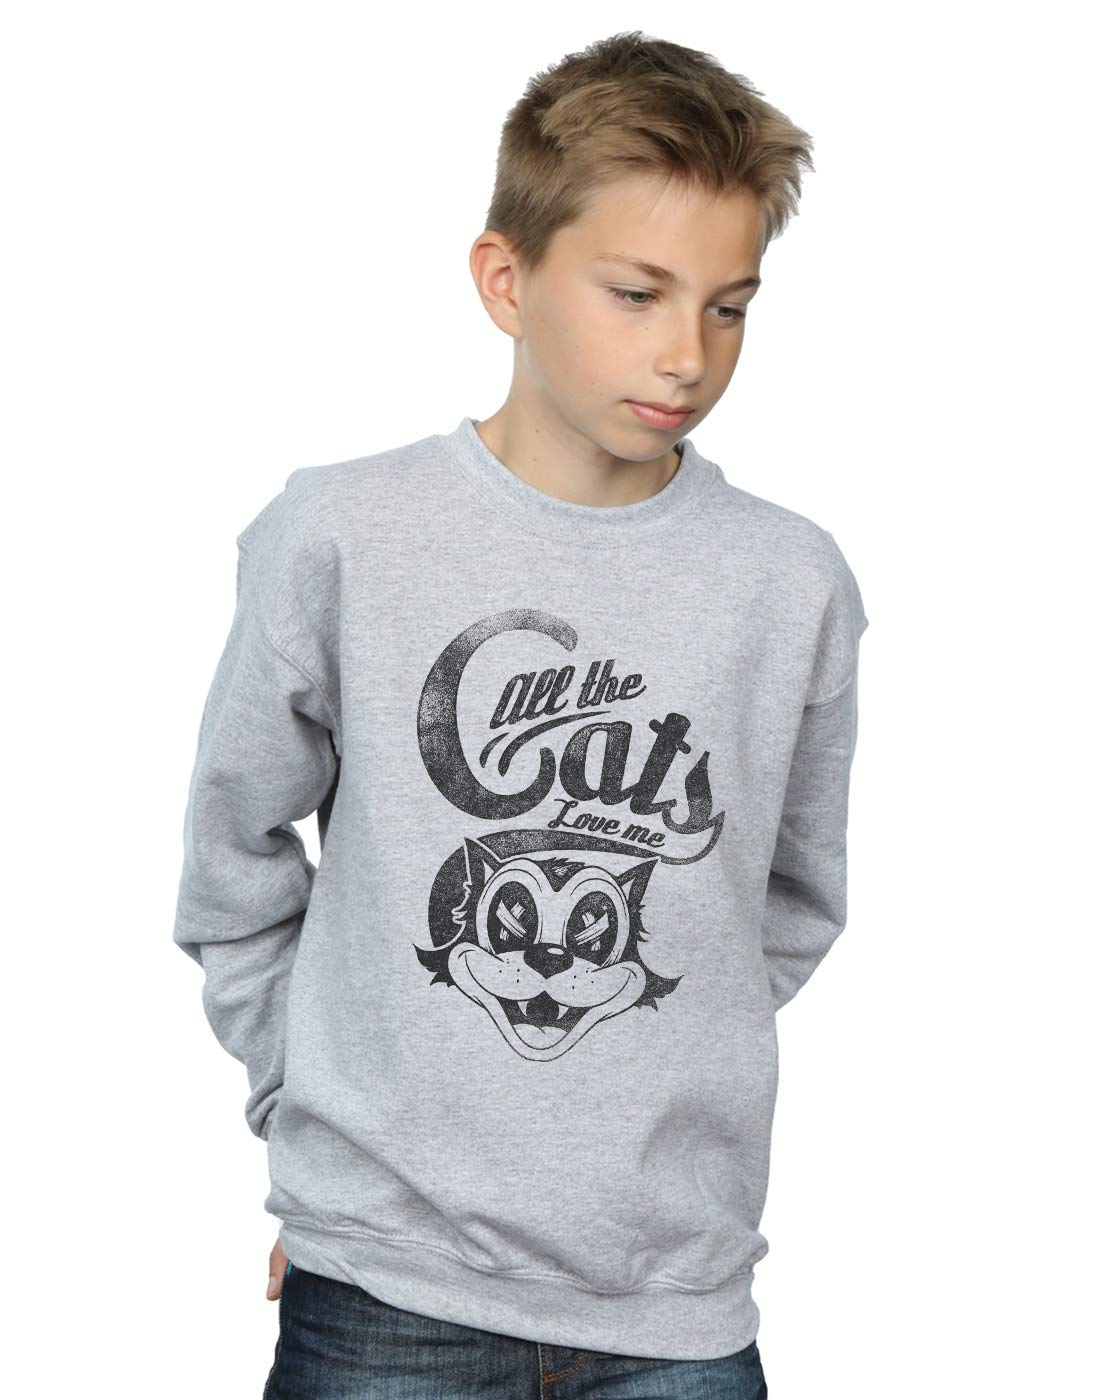 Drewbacca Boys All The Cats Love Me Sweatshirt Sport Grey 7-8 Years